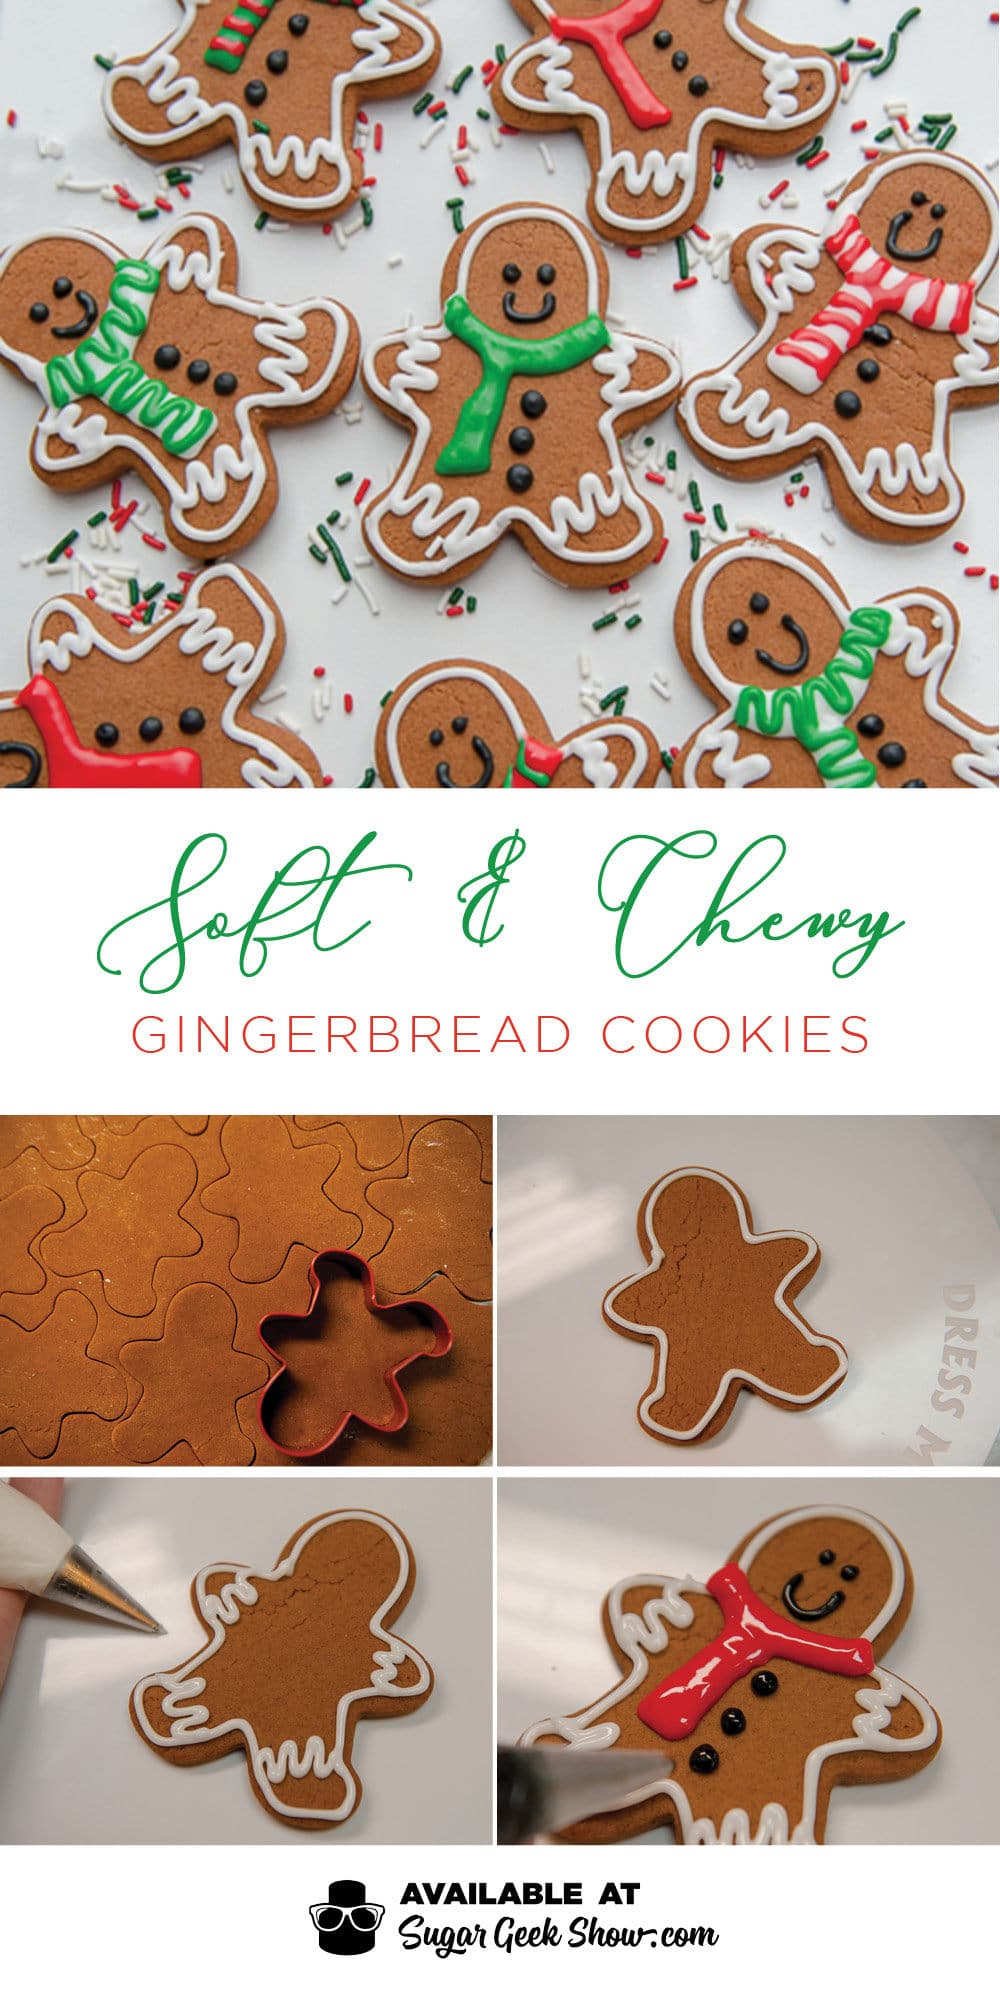 Soft and chewy gingerbread cookies get their amazing texture from butter, brown sugar and molasses! Super simple no-spread recipe and easy piping tips for the cutest gingerbread men cookies ever